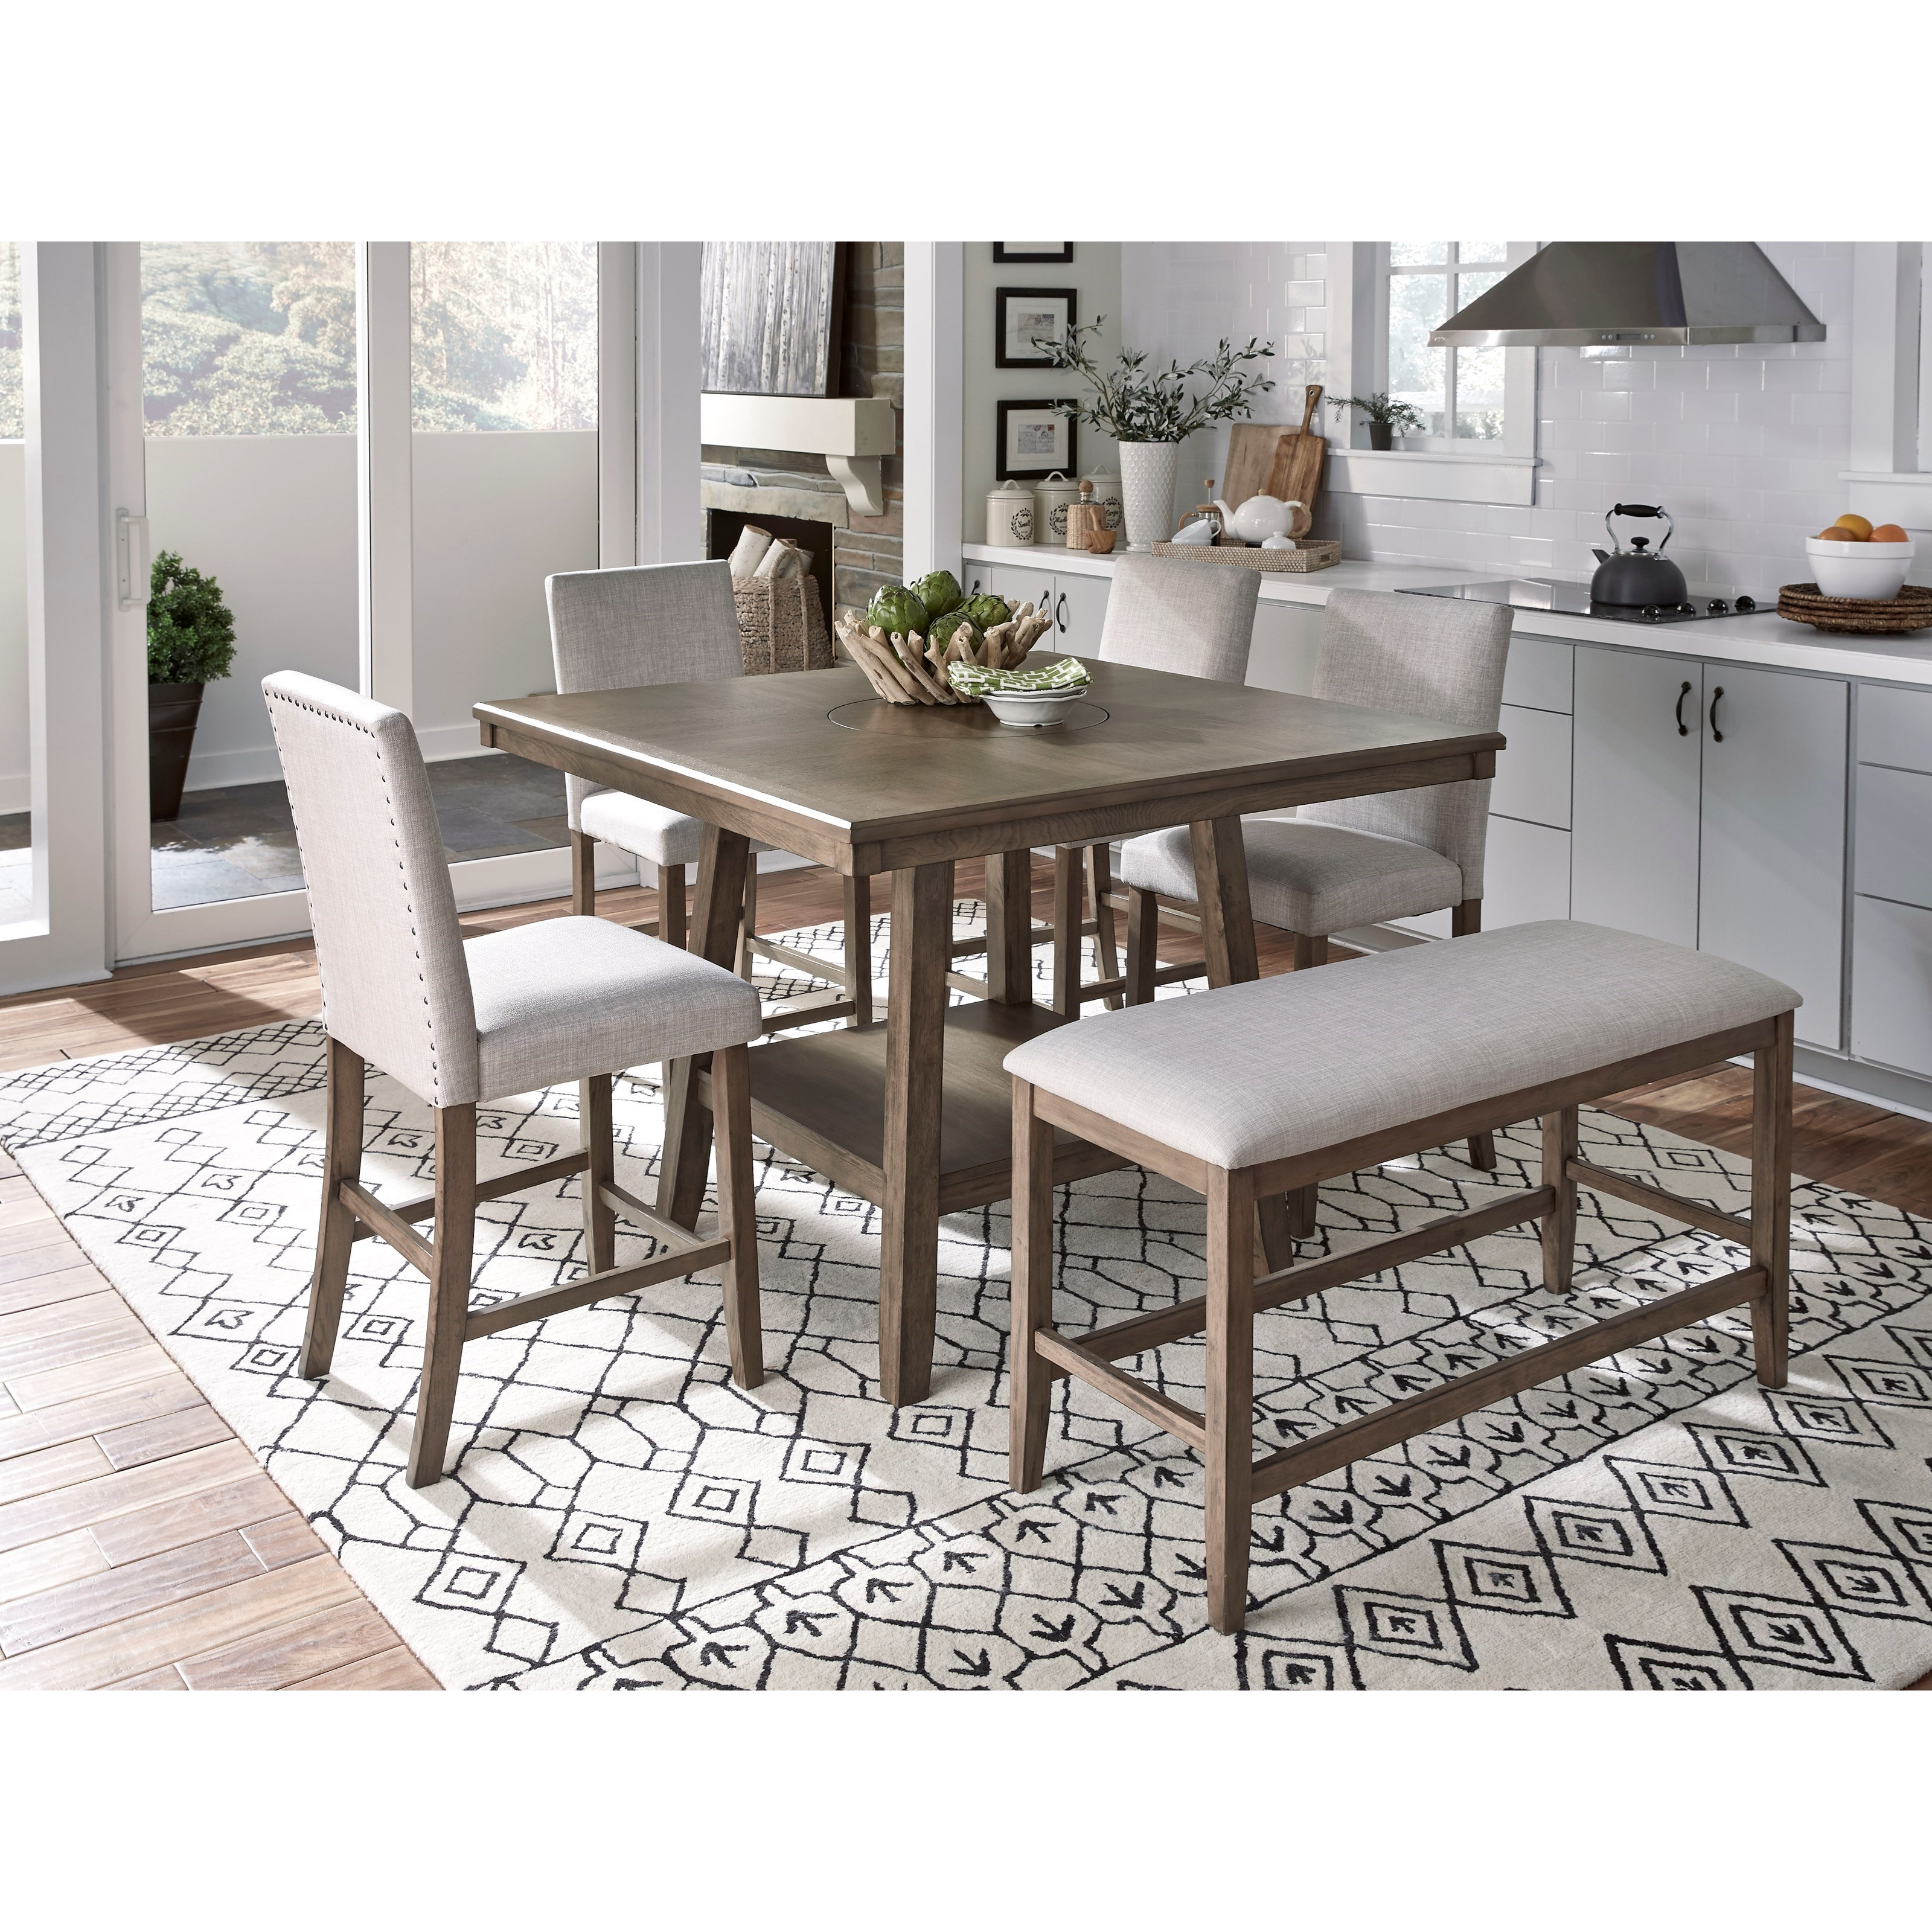 Superb Halden Counter Height Dining Set With Bench Beatyapartments Chair Design Images Beatyapartmentscom